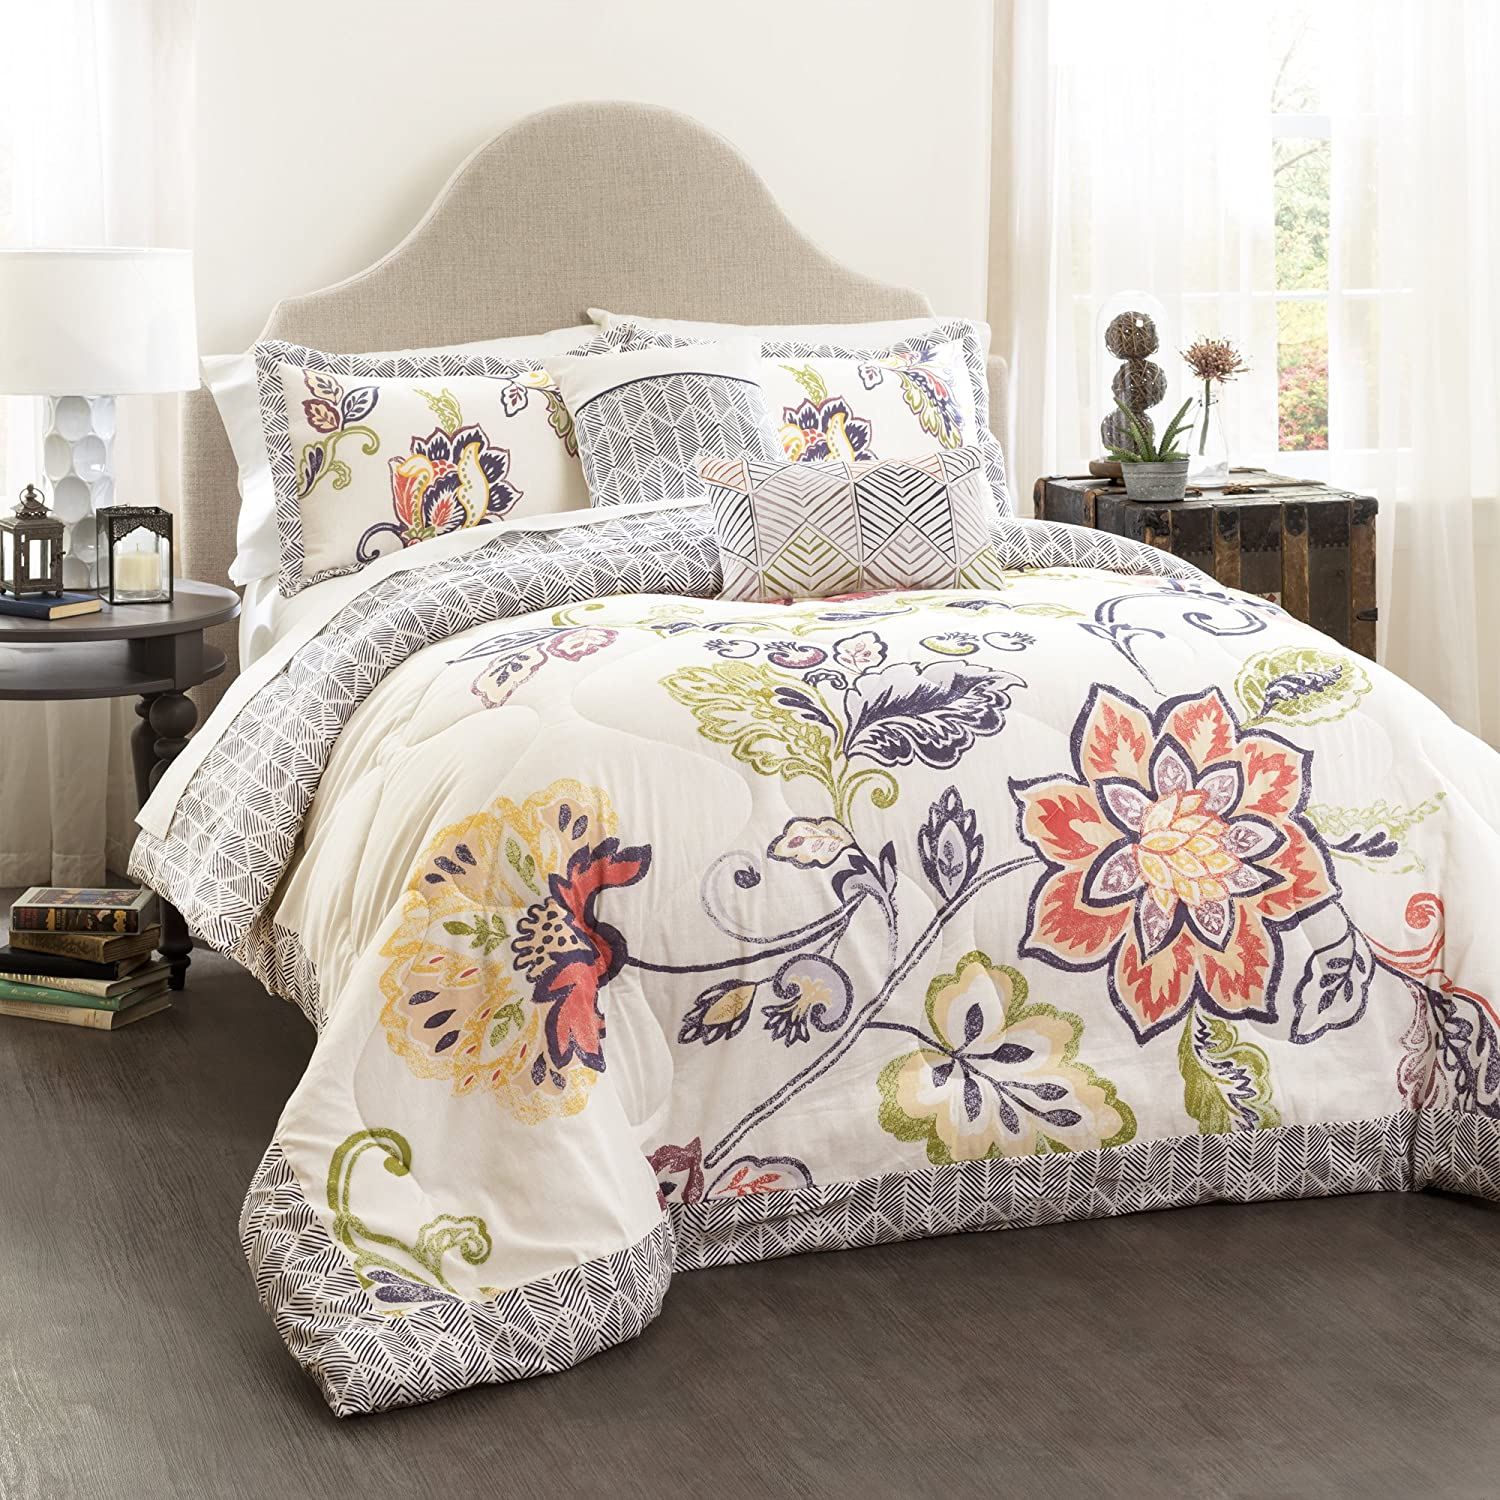 bedroom comforters bed comforter discount sets decorate queen pretty ideas